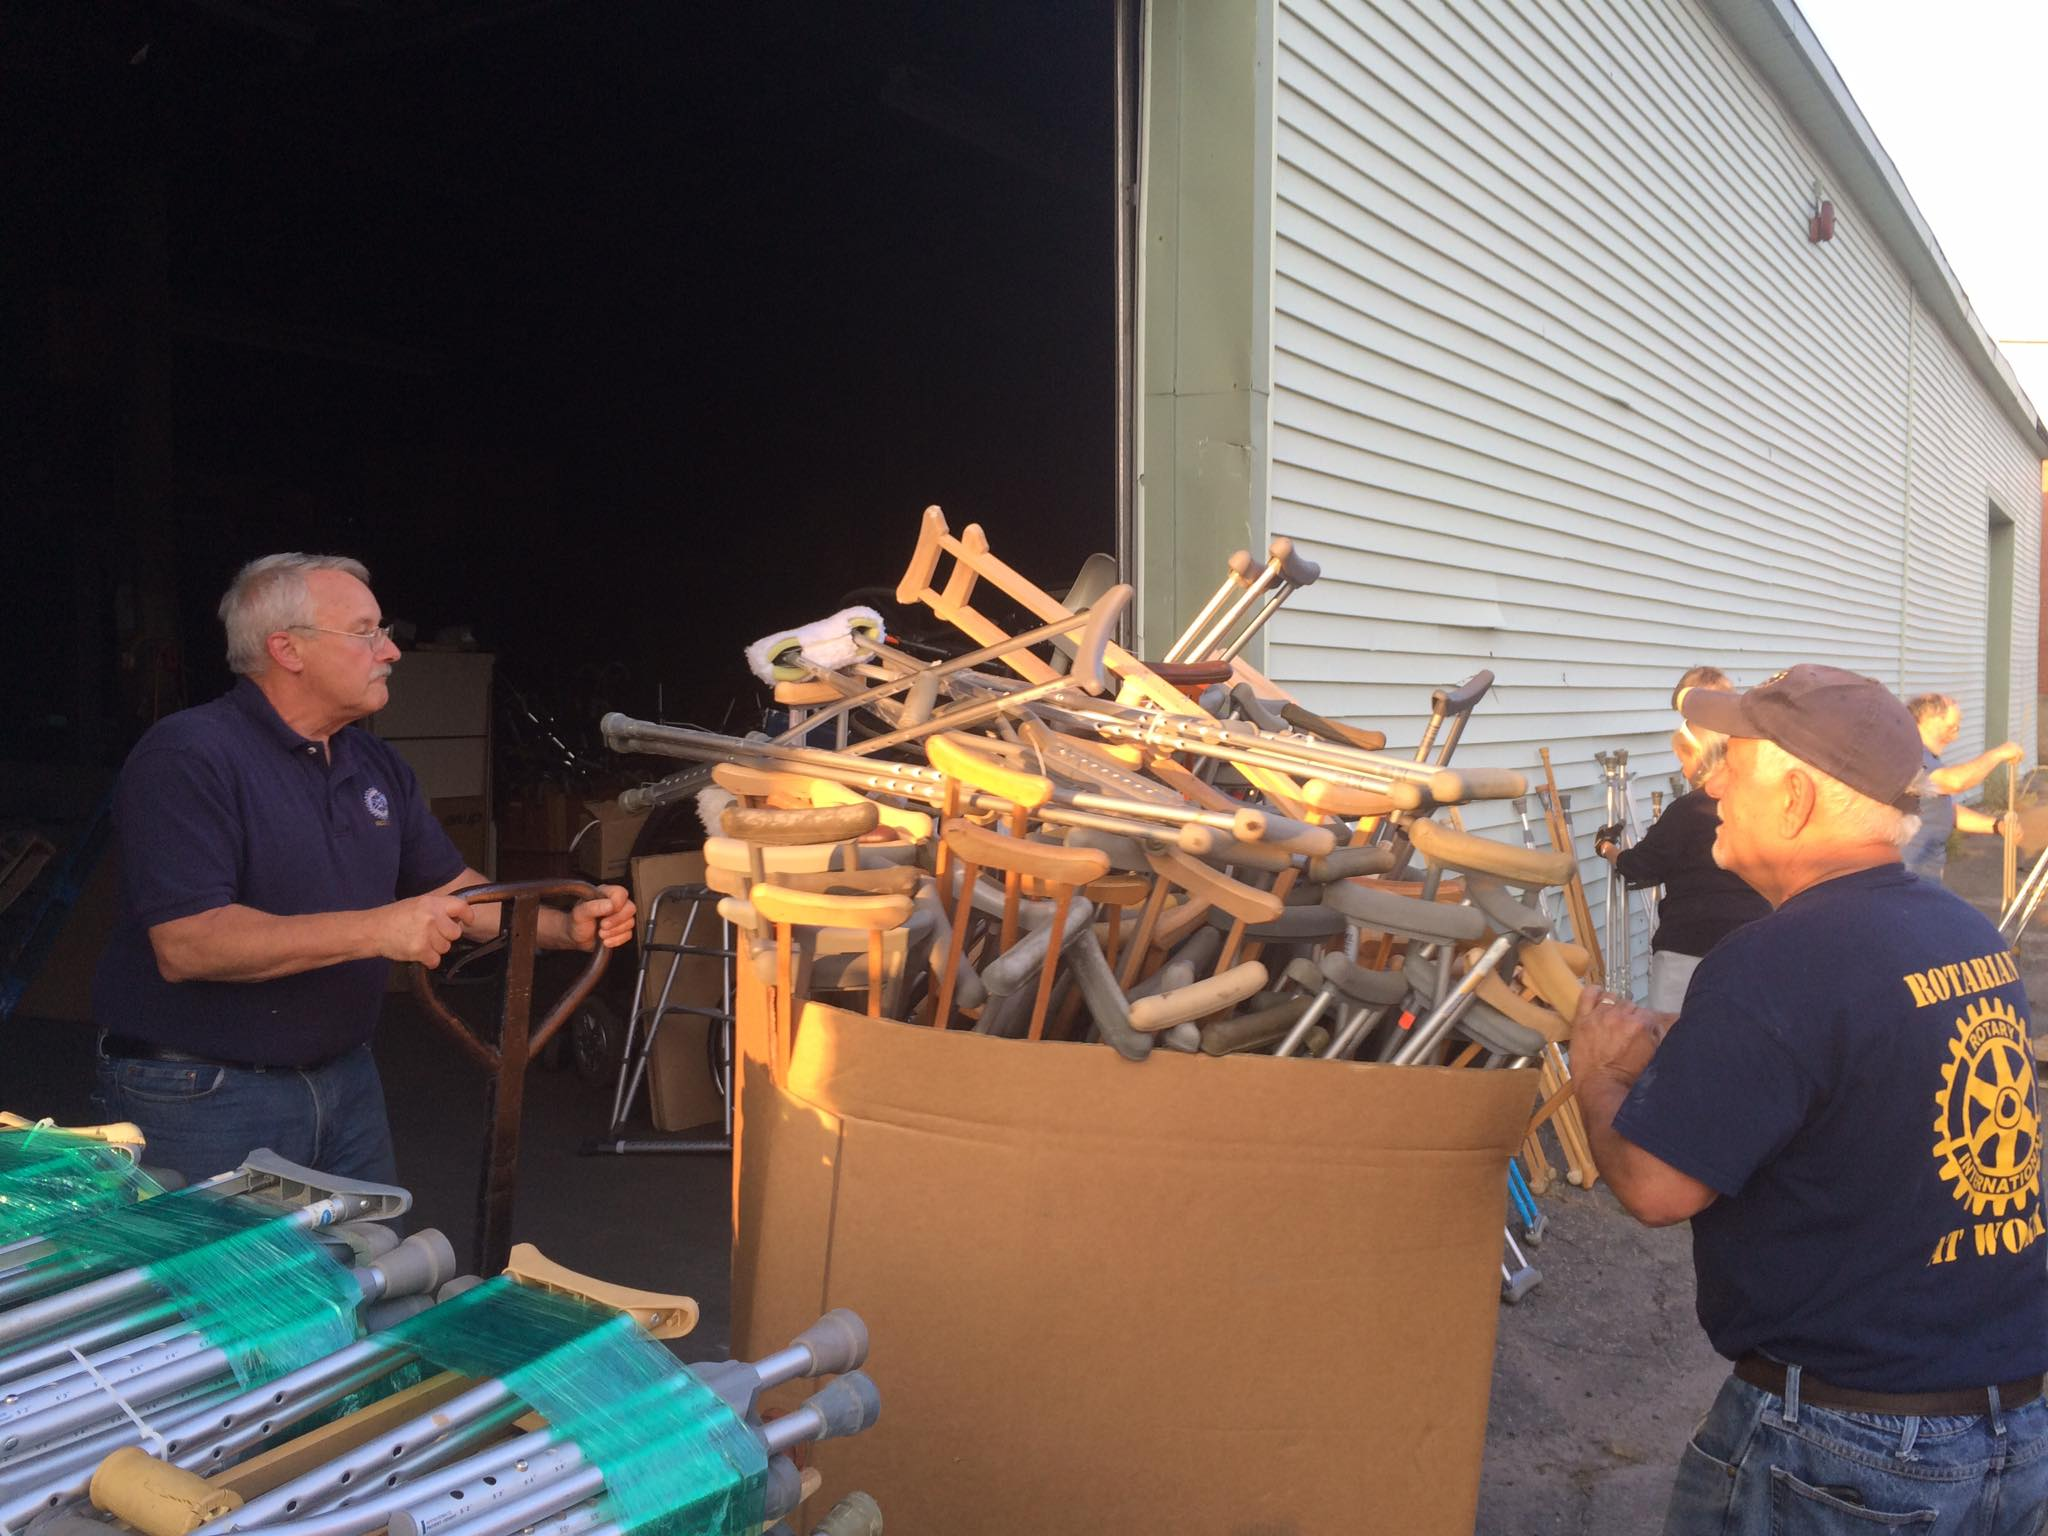 Local Rotarians move a box of crutches in a recent effort to pack up mobility aids for Crutches 4 Africa. SUBMITTED PHOTO